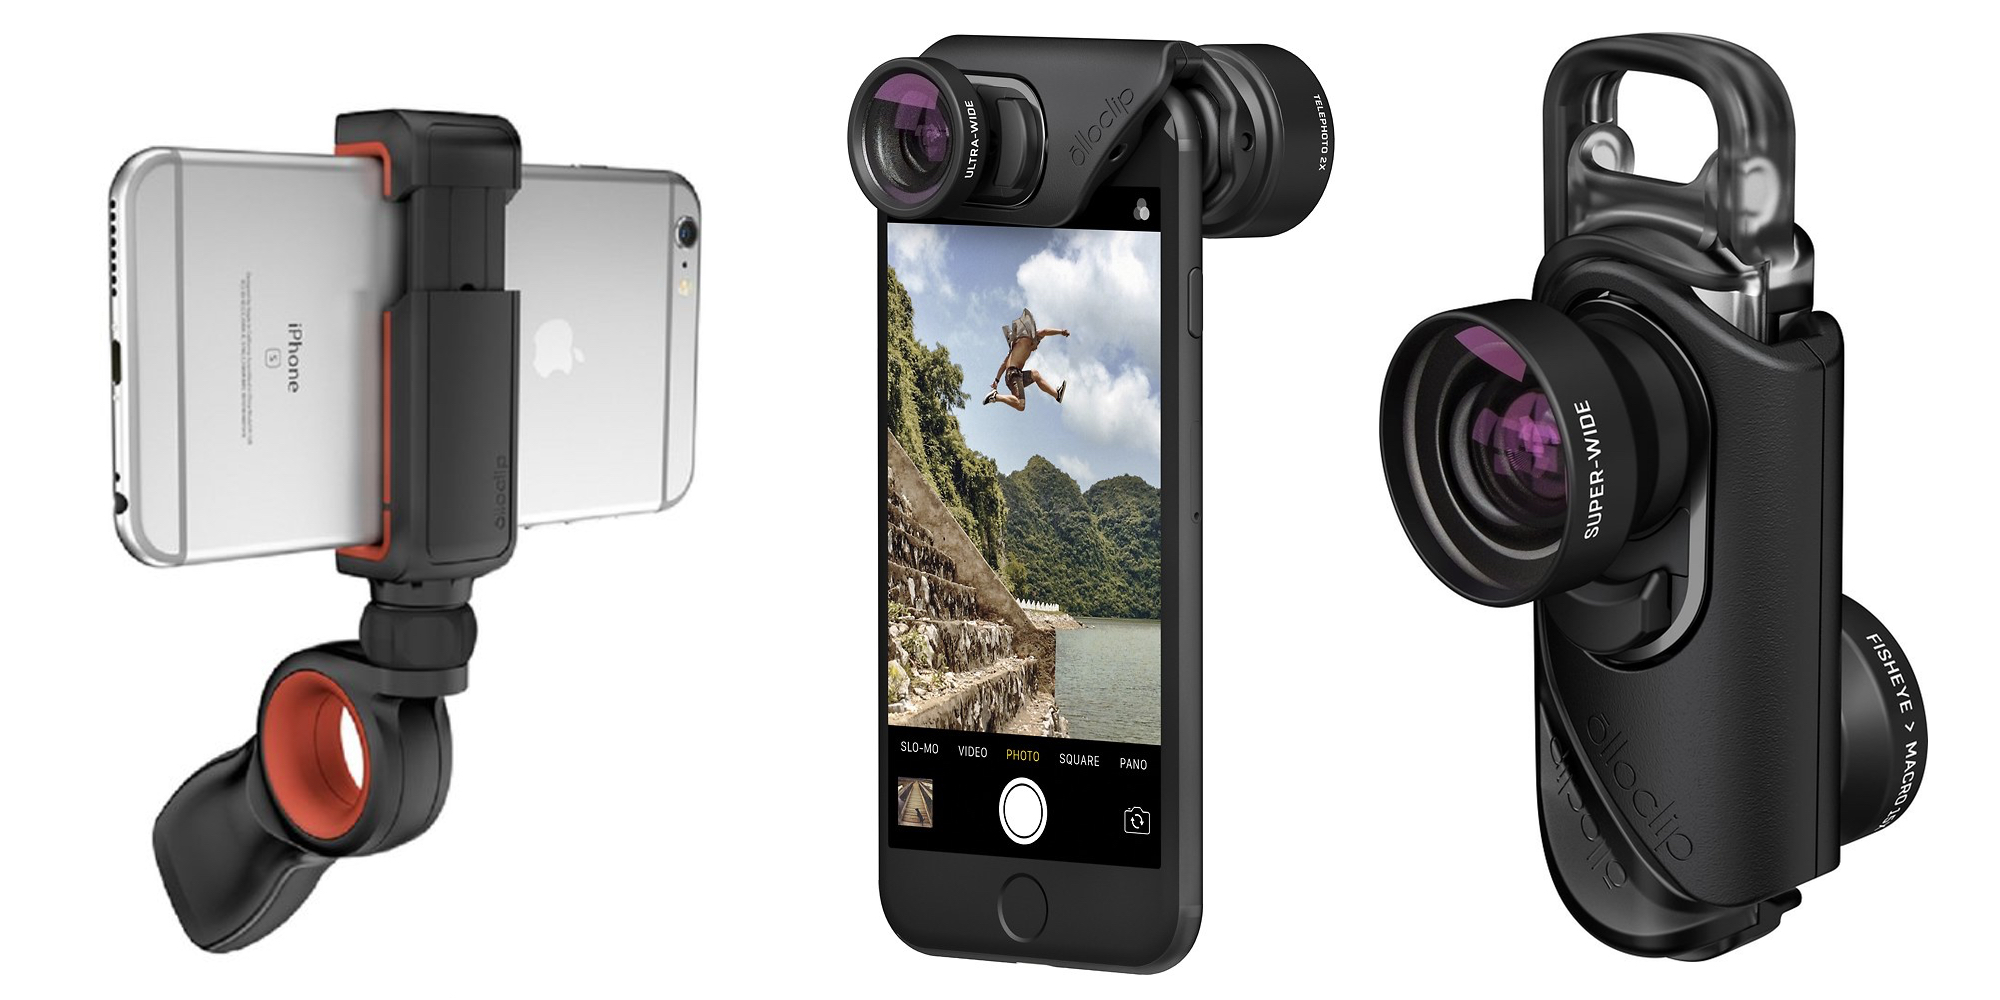 Take your iPhoneography next level w/ discounted olloclip lens kit and accessories from $15